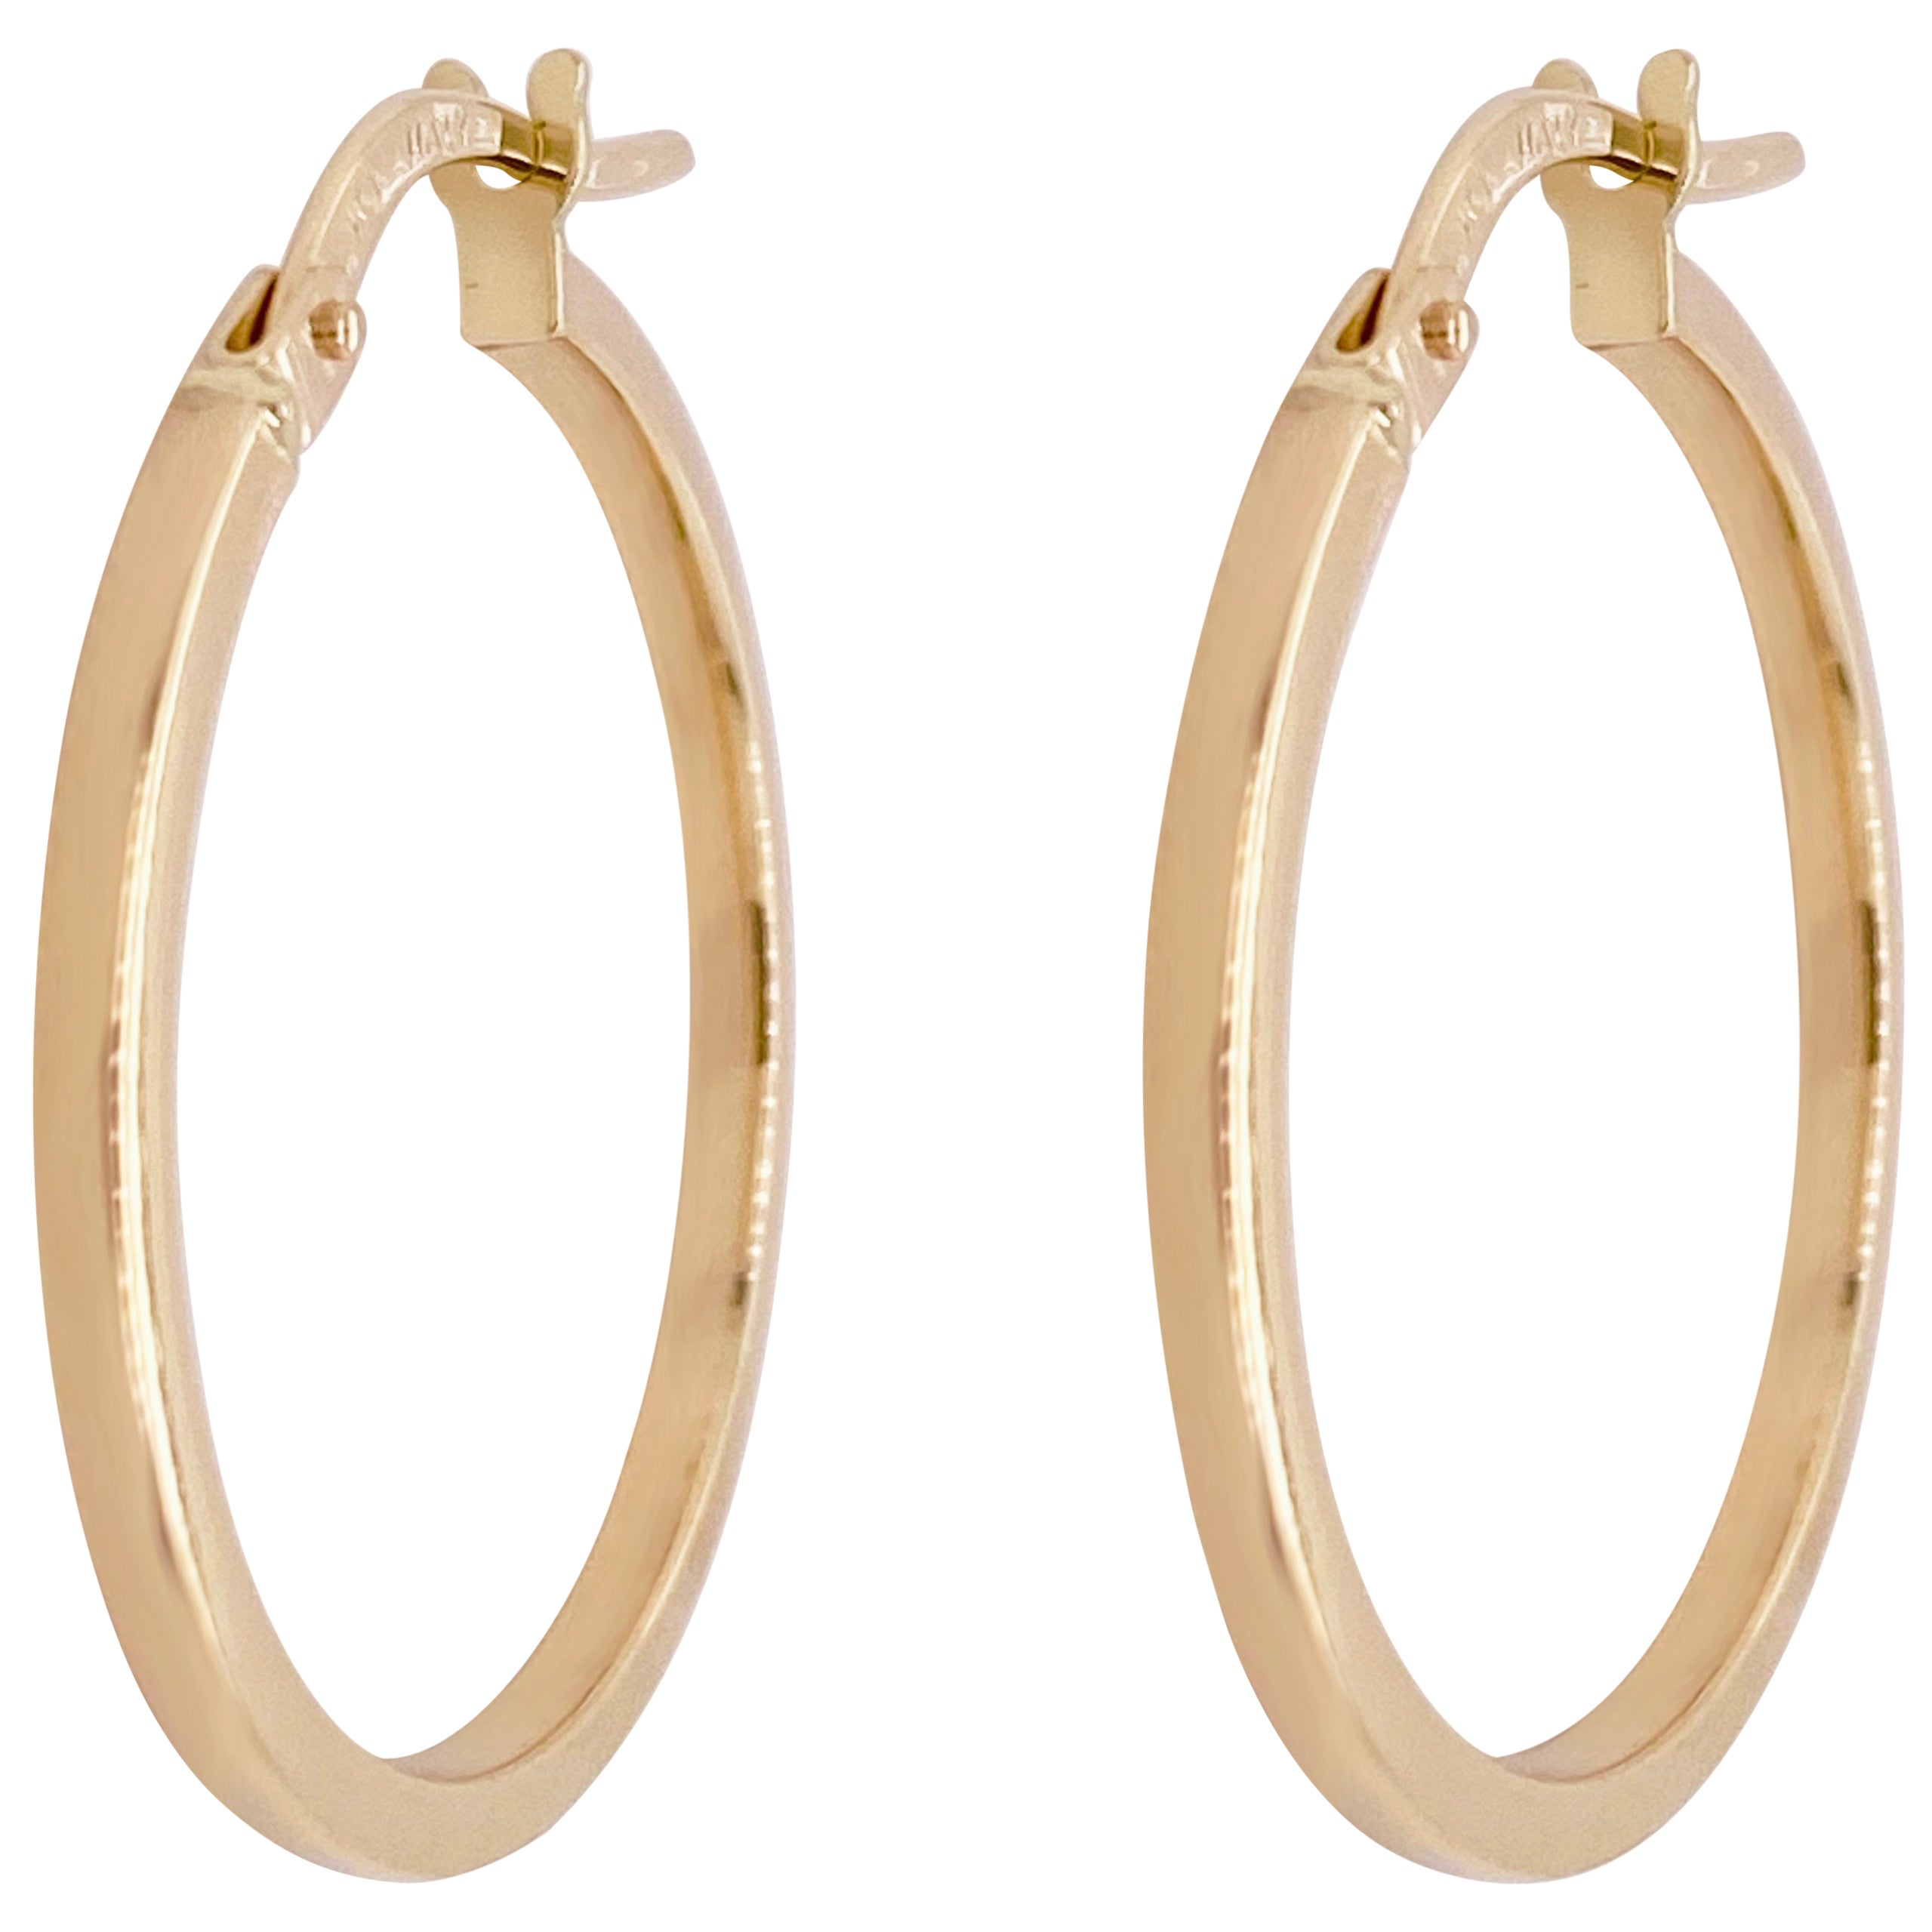 Gold Hoop Earrings, 14 Karat Yellow Gold, 14 Karat, Medium Hoops